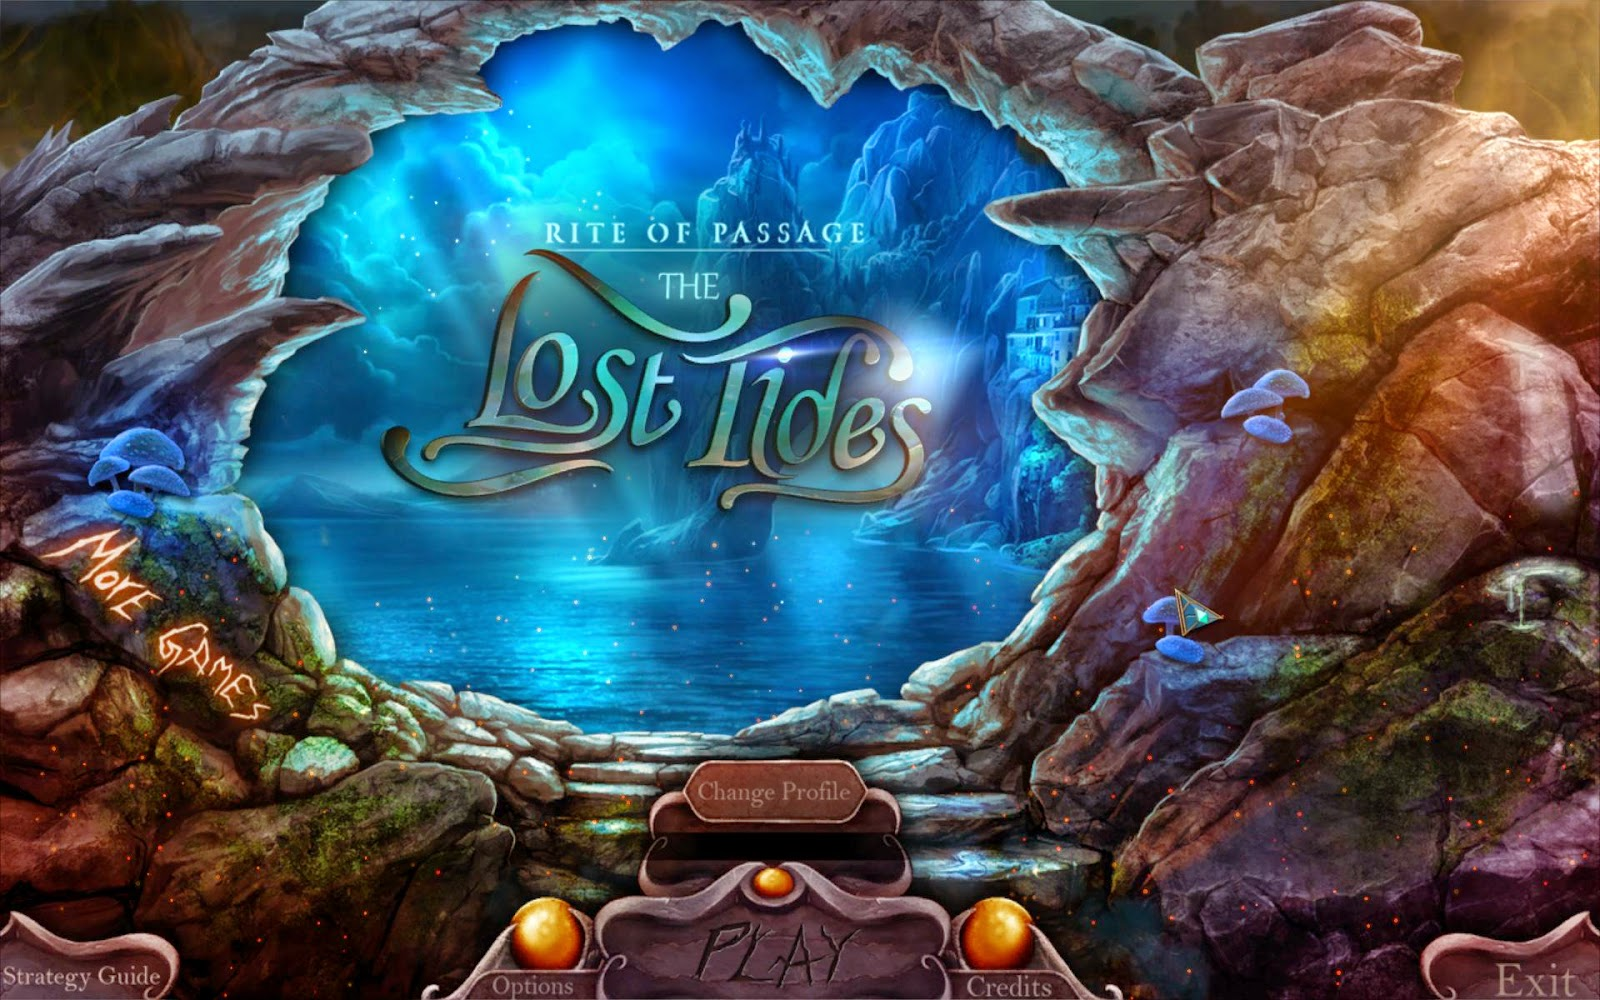 http://pc-games.over-blog.com/2015/01/rite-of-passage-4-the-lost-tides-game-download.html